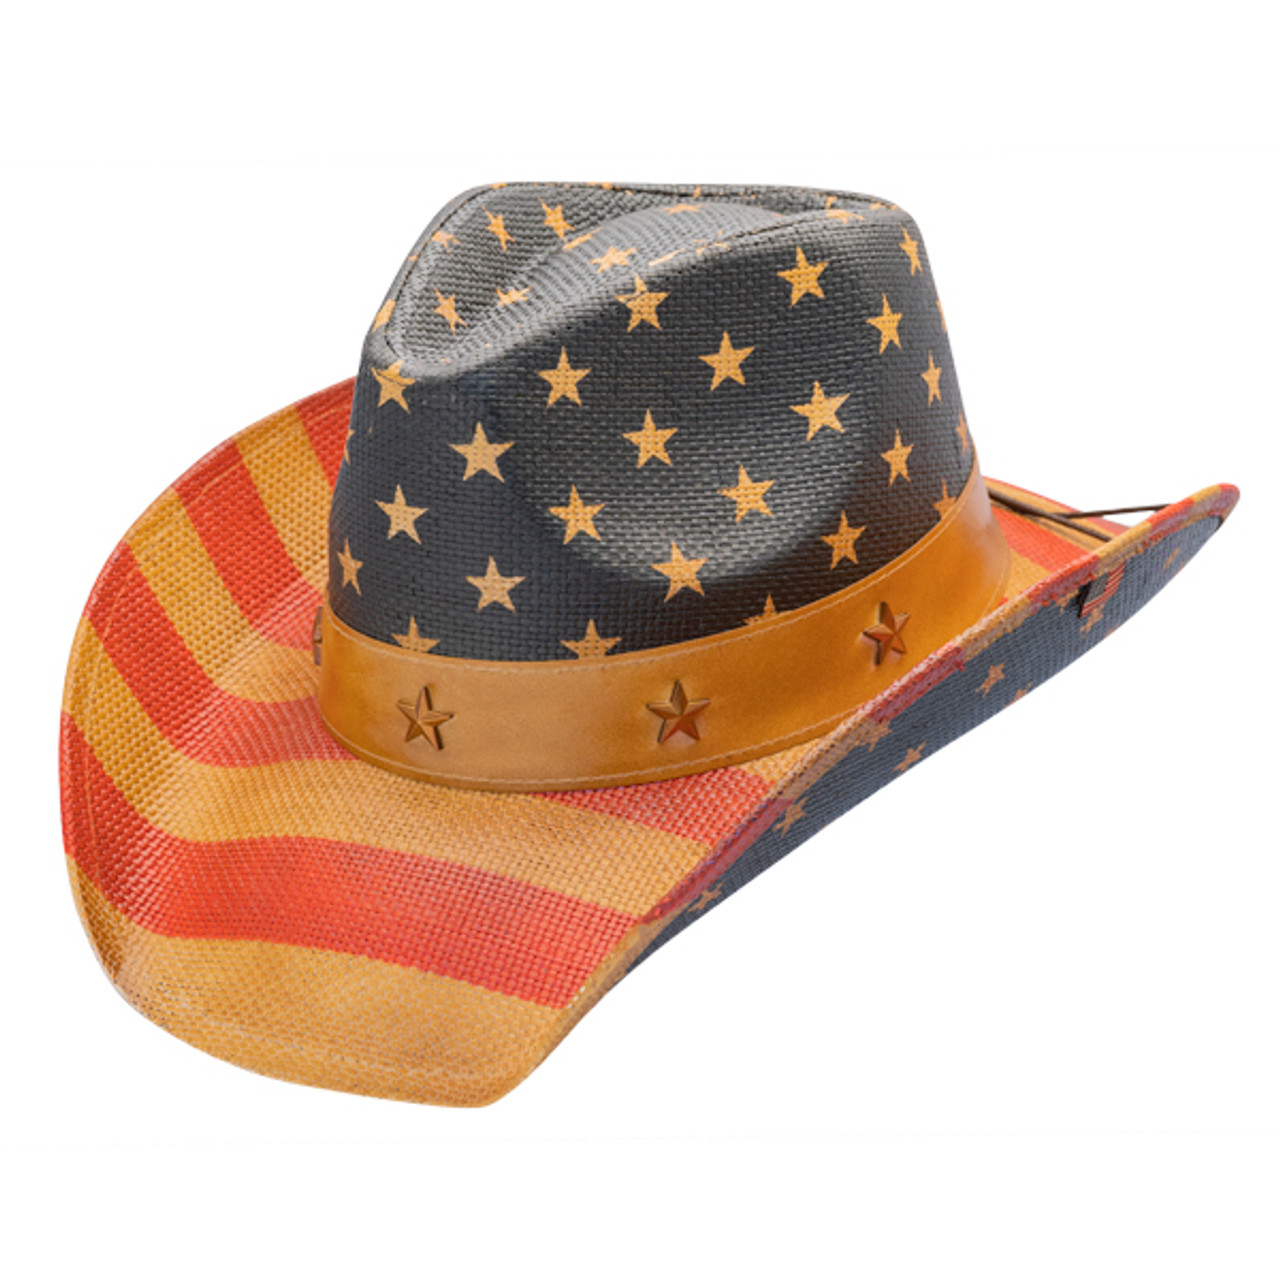 daea83fa California Hat Company | Vintage American Flag Cowboy Hat | Hats Unlimited